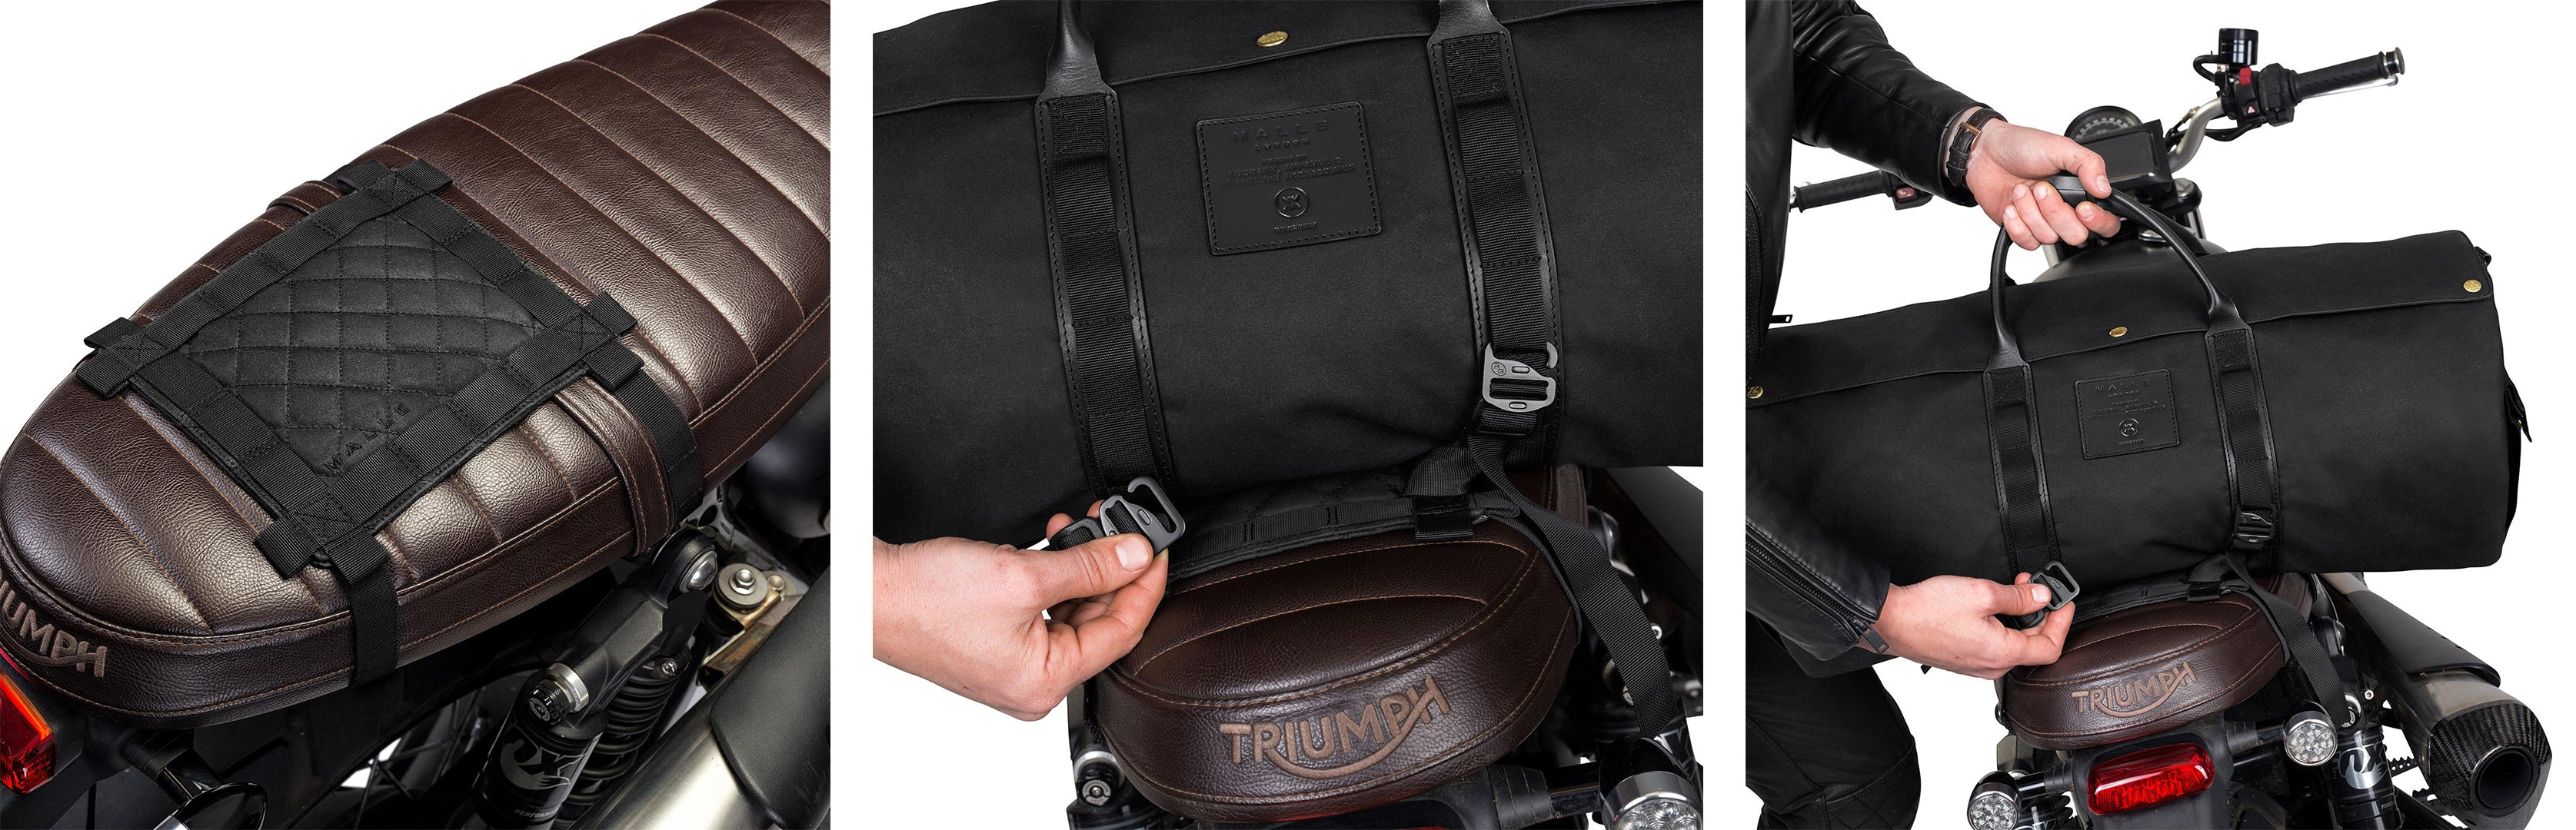 Installing a Malle Duffel on your triumph